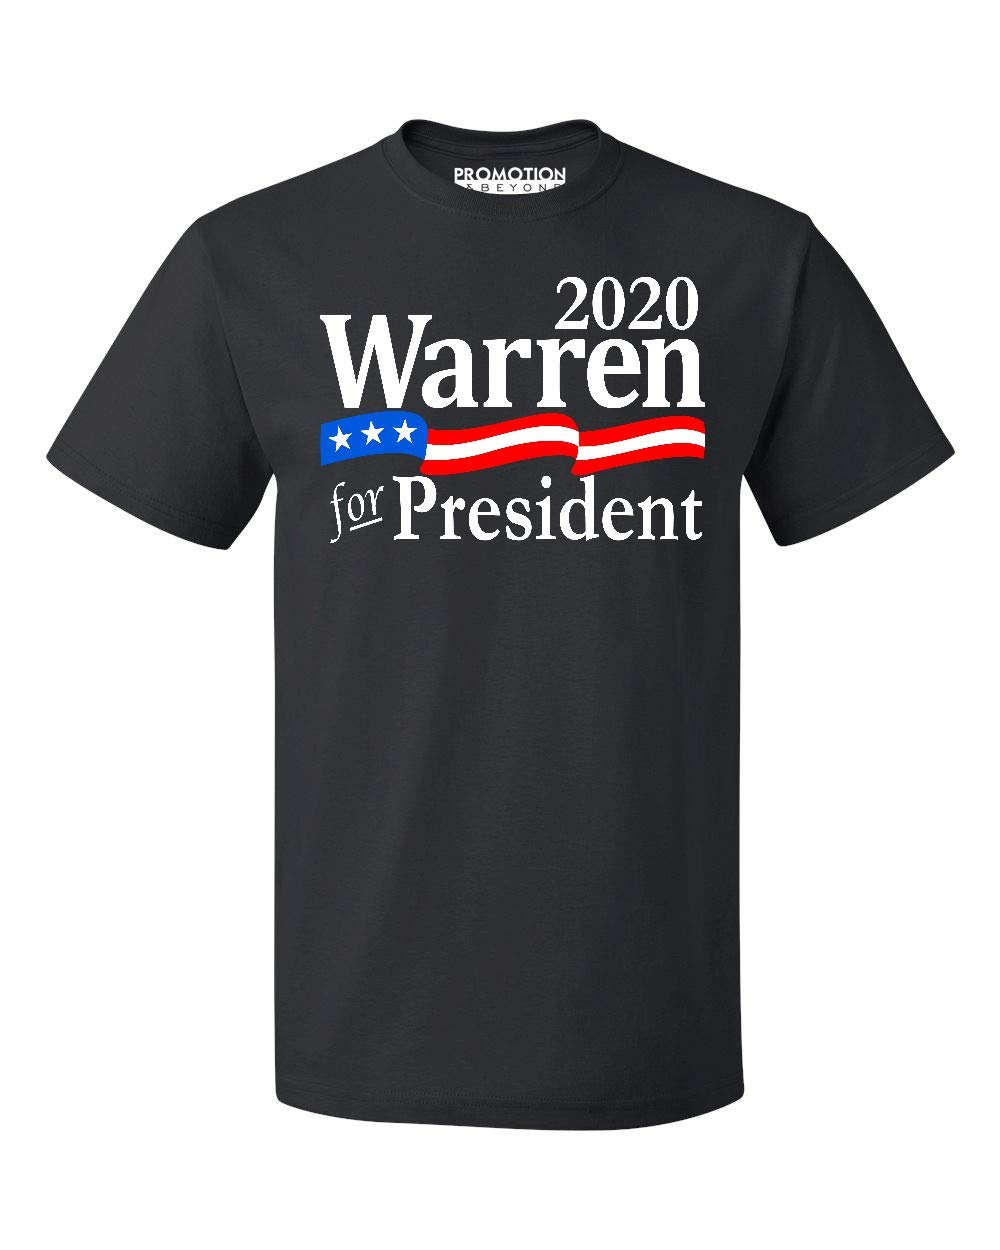 Promotion Beyond Warren For President 2020 Elections Campaign 3051 Shirts